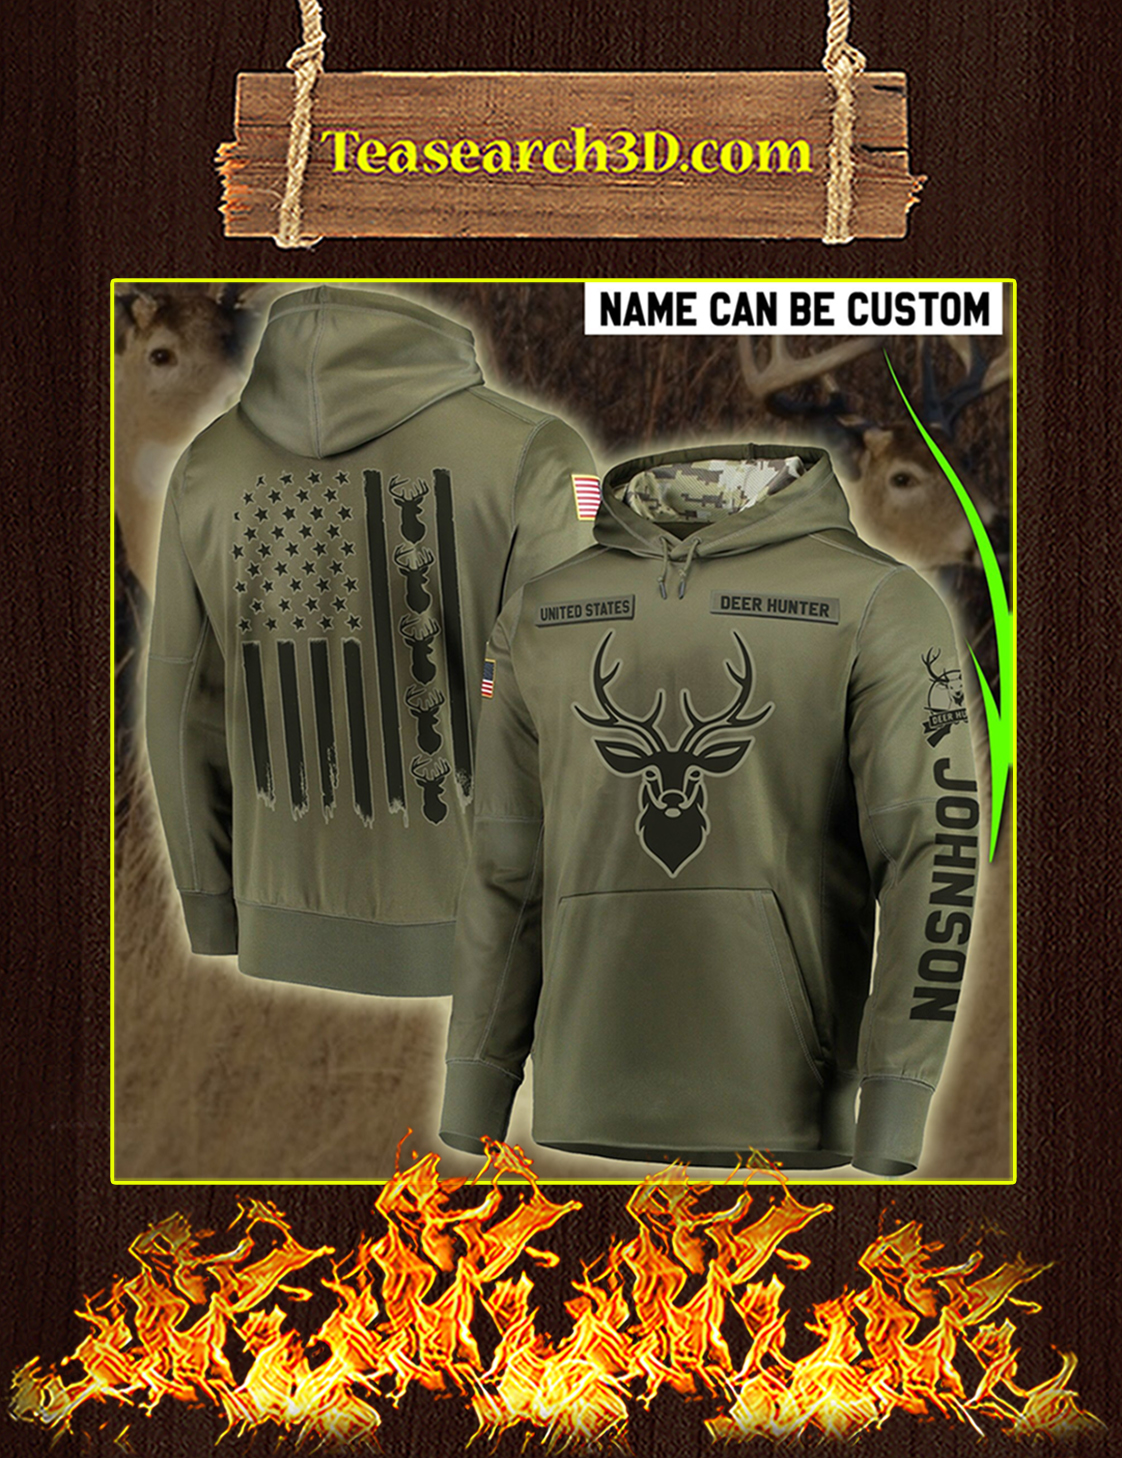 Personalized Custom Name Deer Hunter All Over Printed 3D Hoodie Size XL